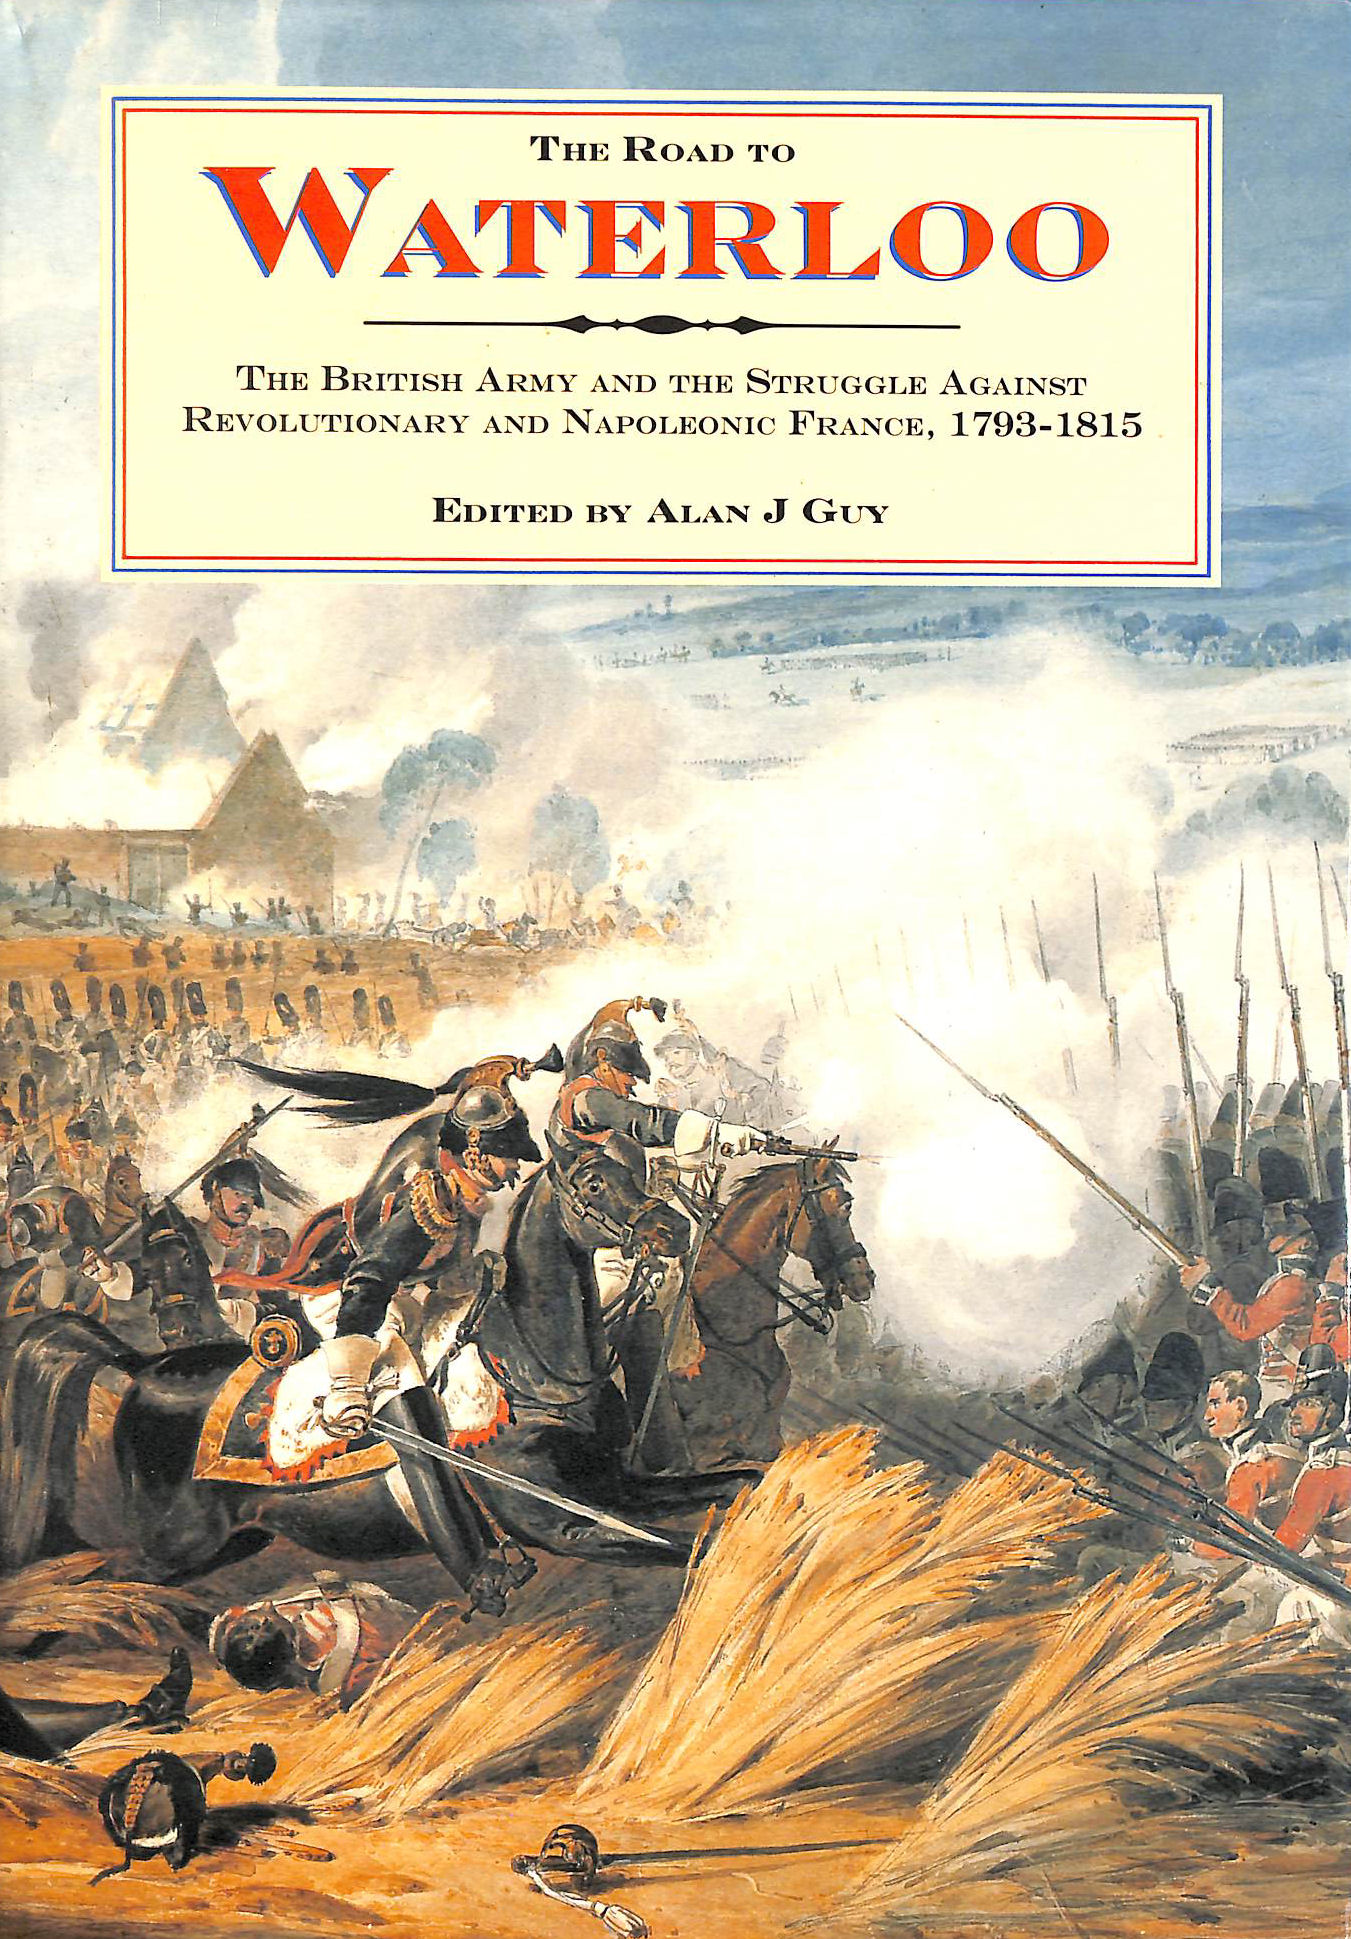 Image for The Road to Waterloo: British Army and the Struggle Against Revolutionary and Napoleonic France, 1793-1815